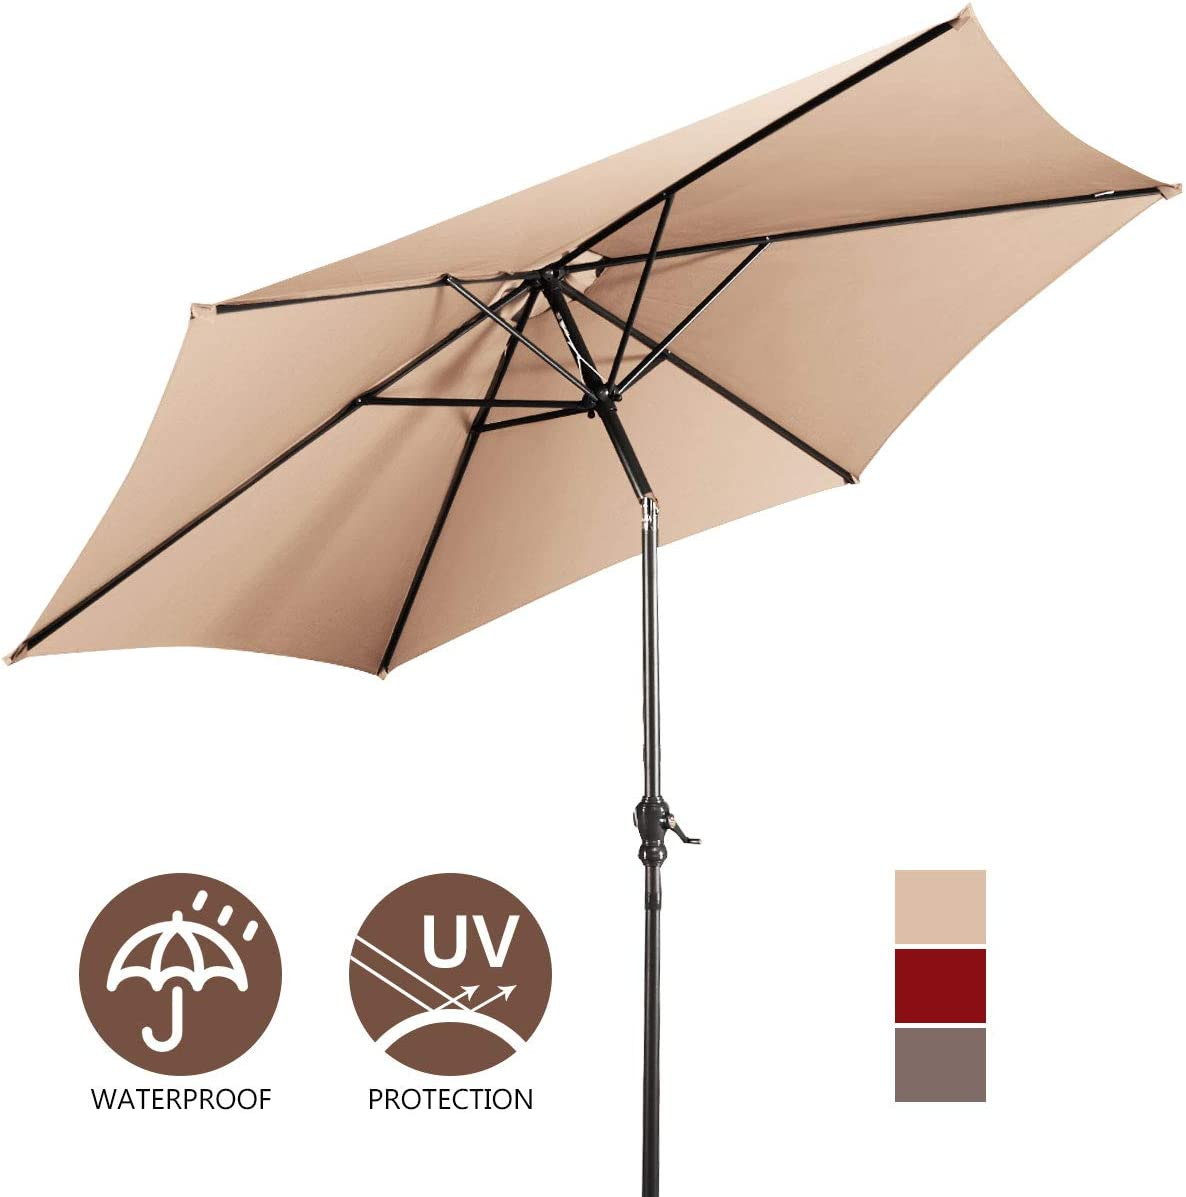 Giantex 10ft Outdoor Patio Umbrella, Market Table Umbrella w Tilt Adjustment and Crank, 180G Polyester, Garden Canopy for Deck Backyard Pool Indoor Outdoor